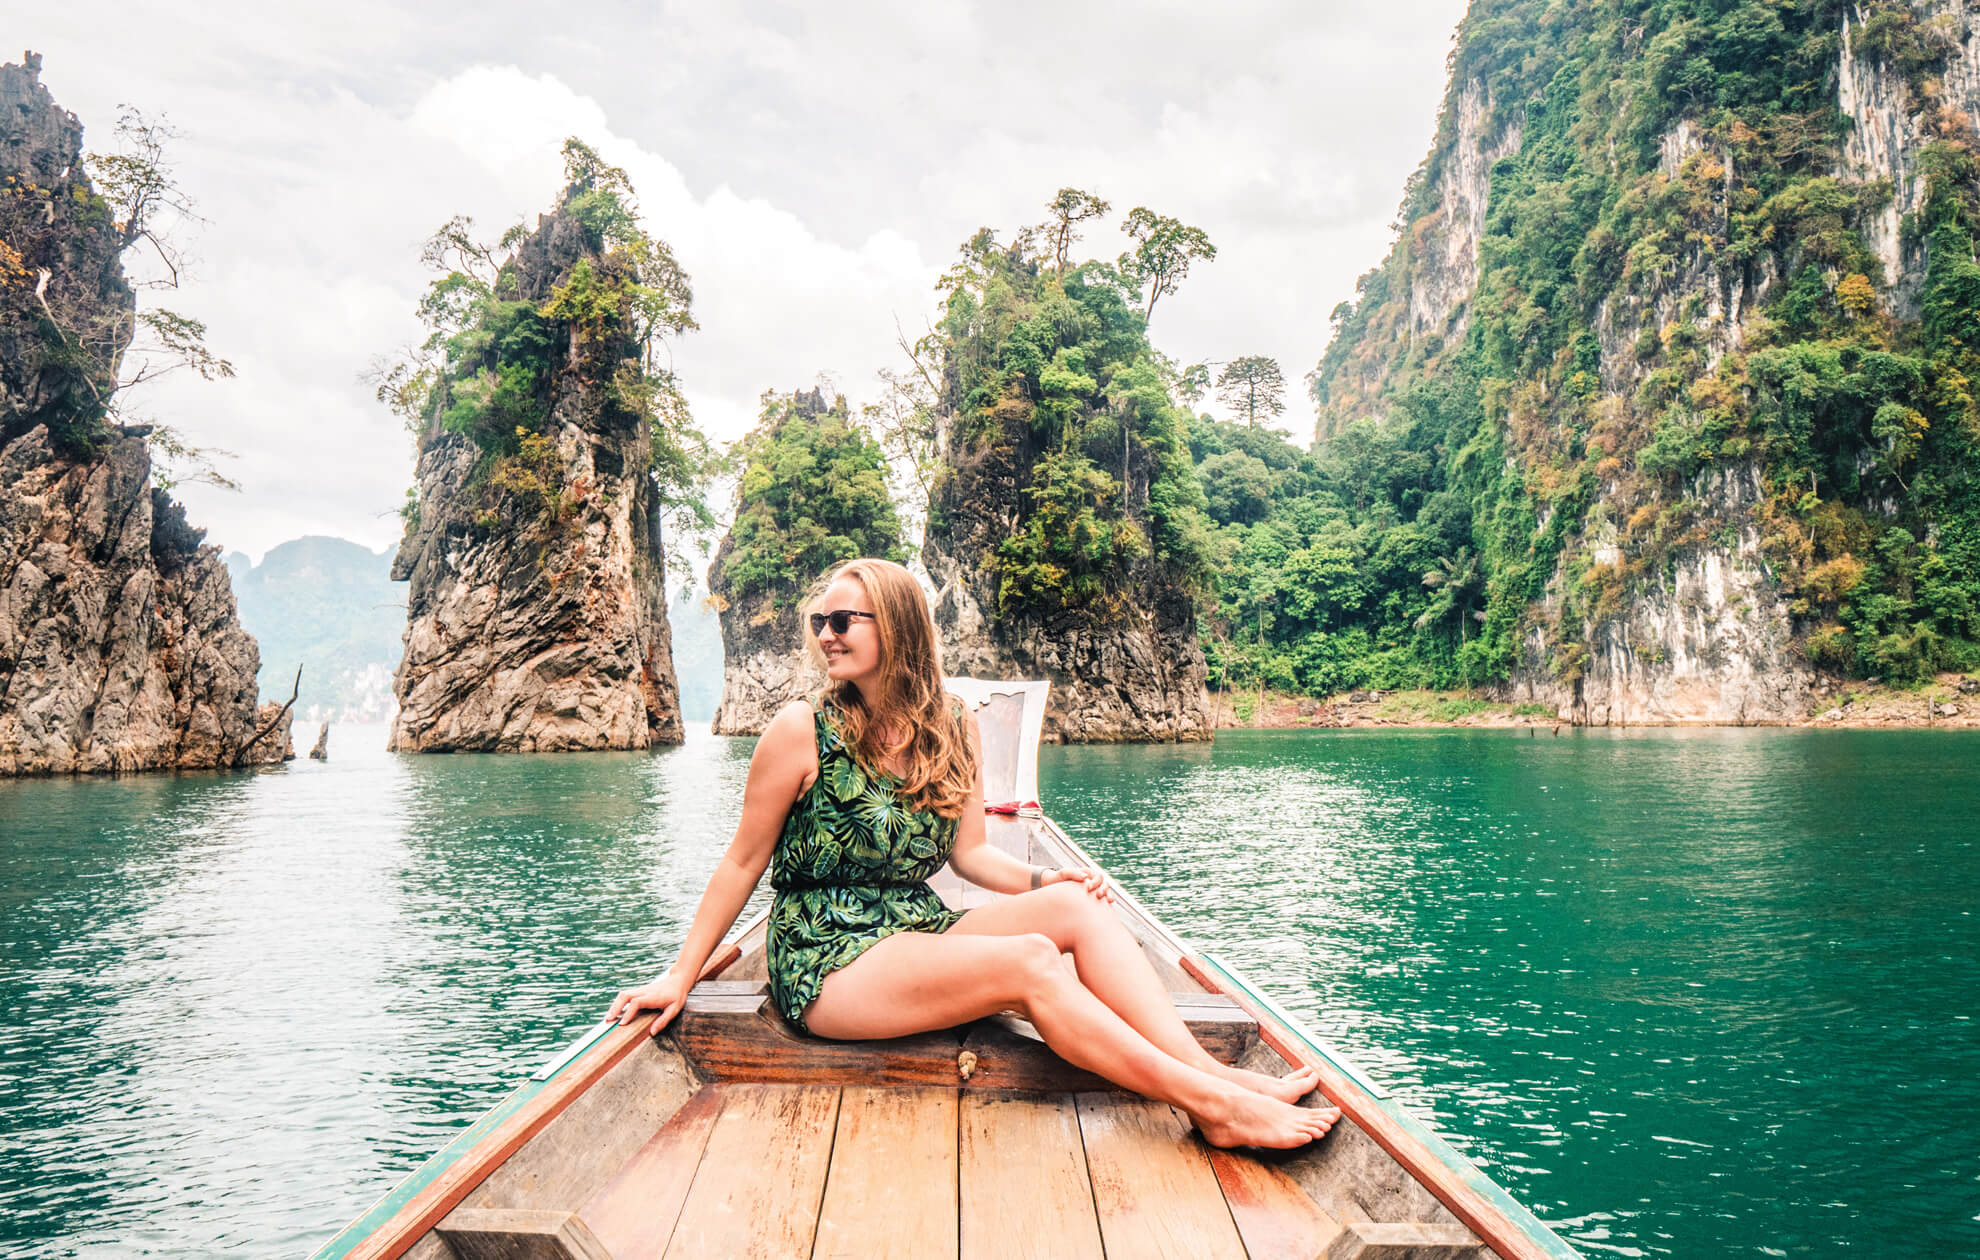 Girl on a boat in a river in Asia